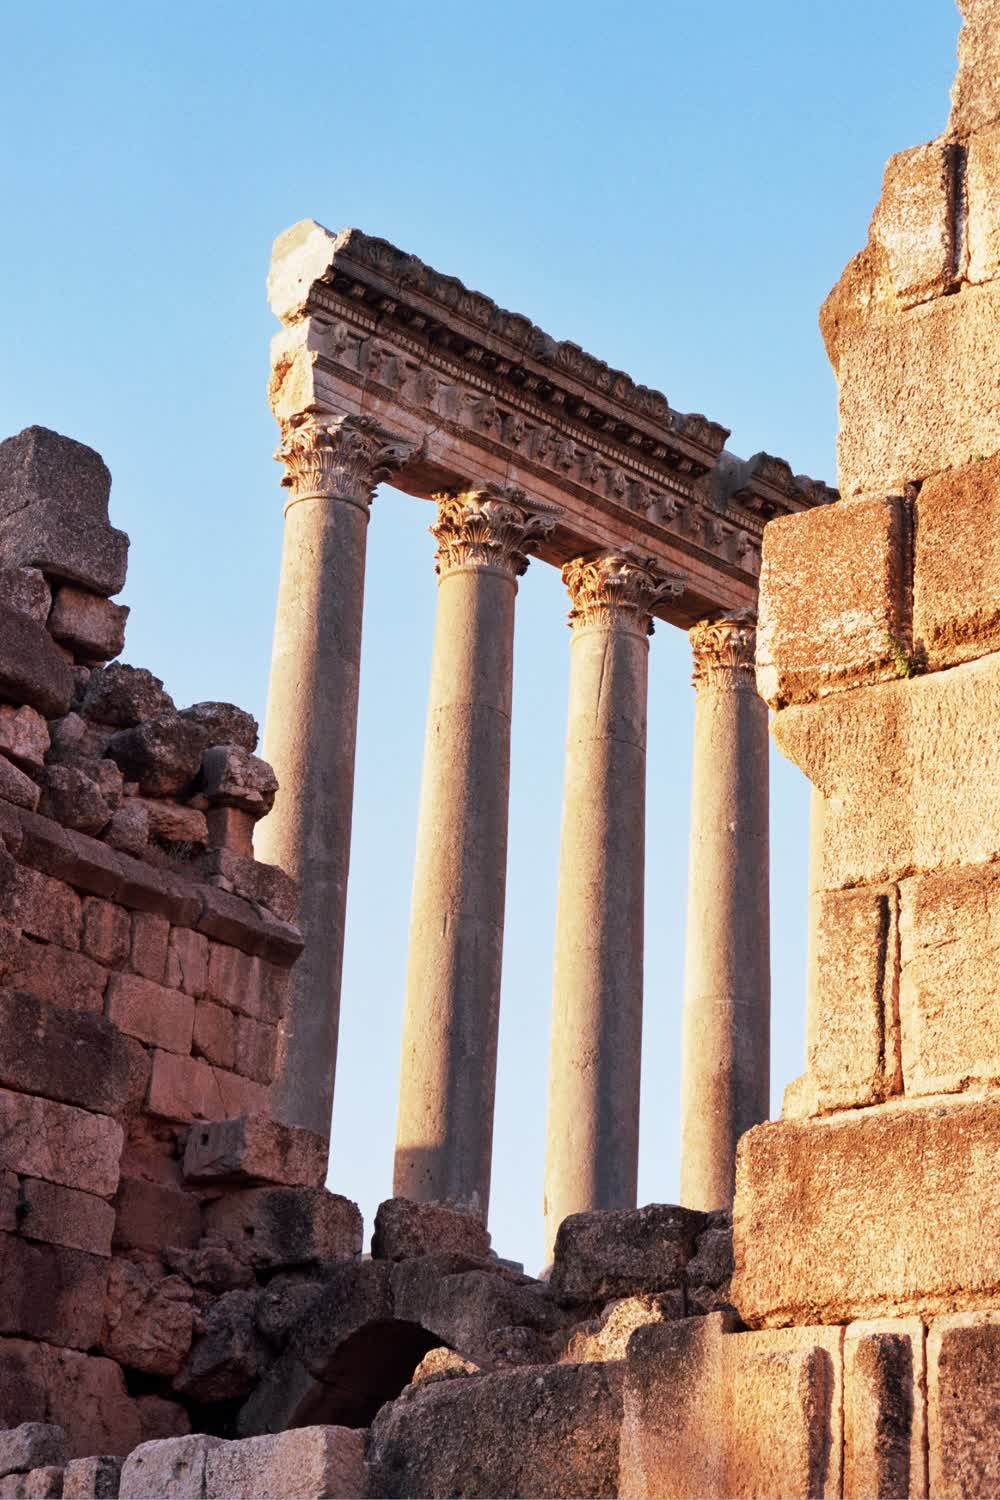 title: Stone Pillars of an Old Roman Temple